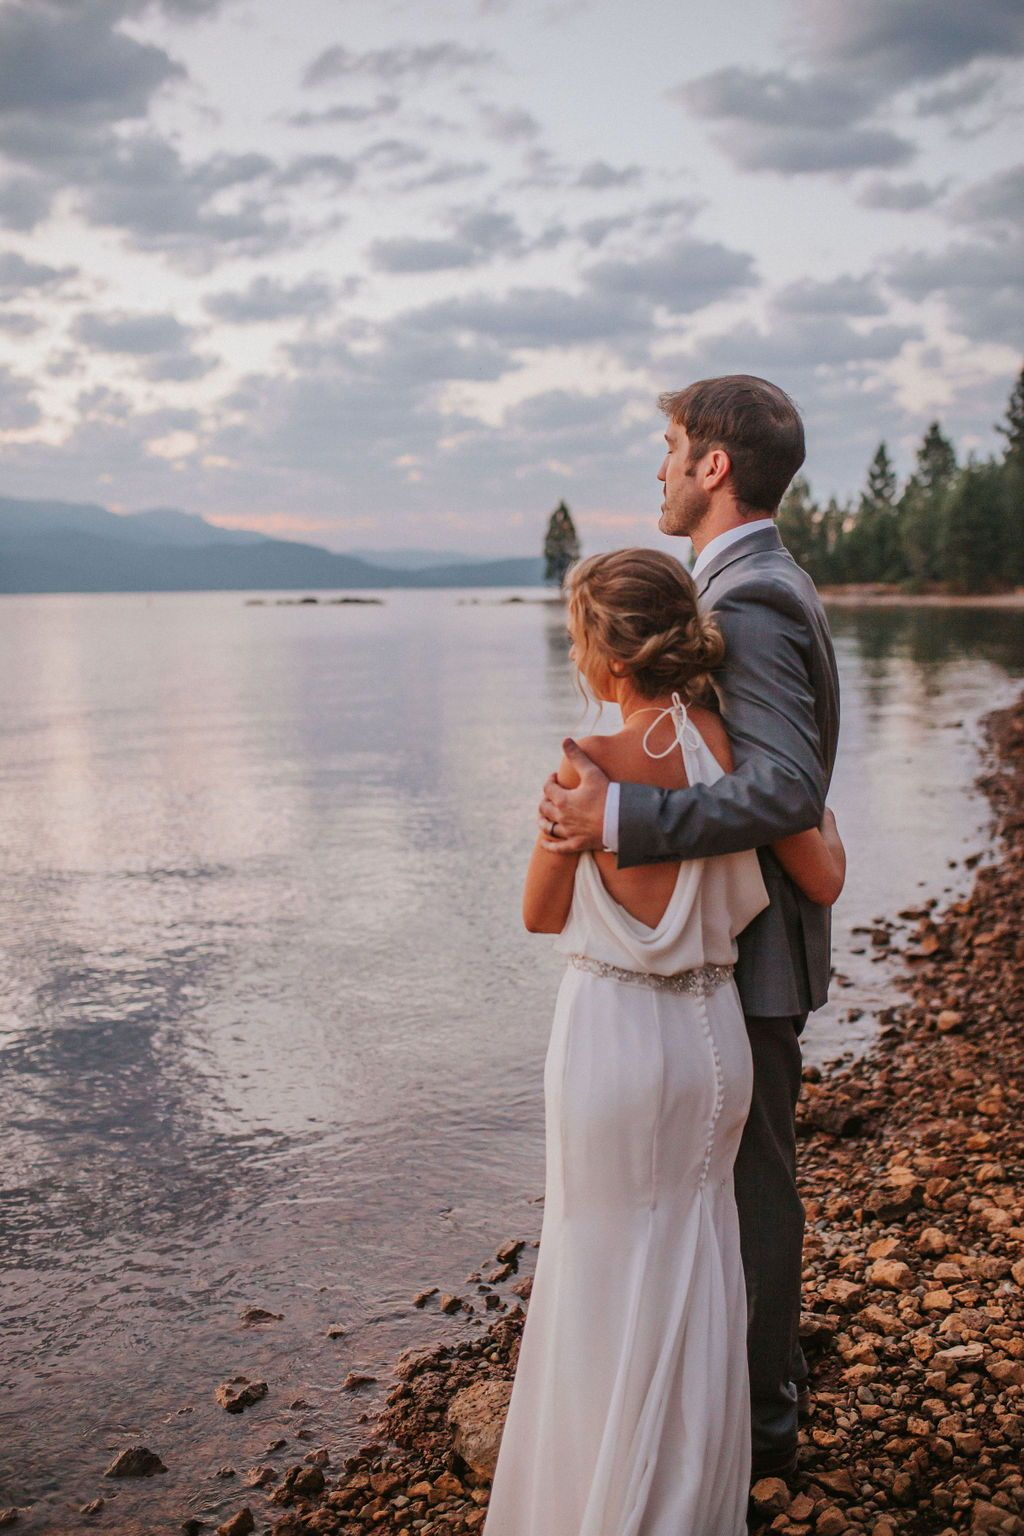 This summertime beach elopement was the thing of dreams